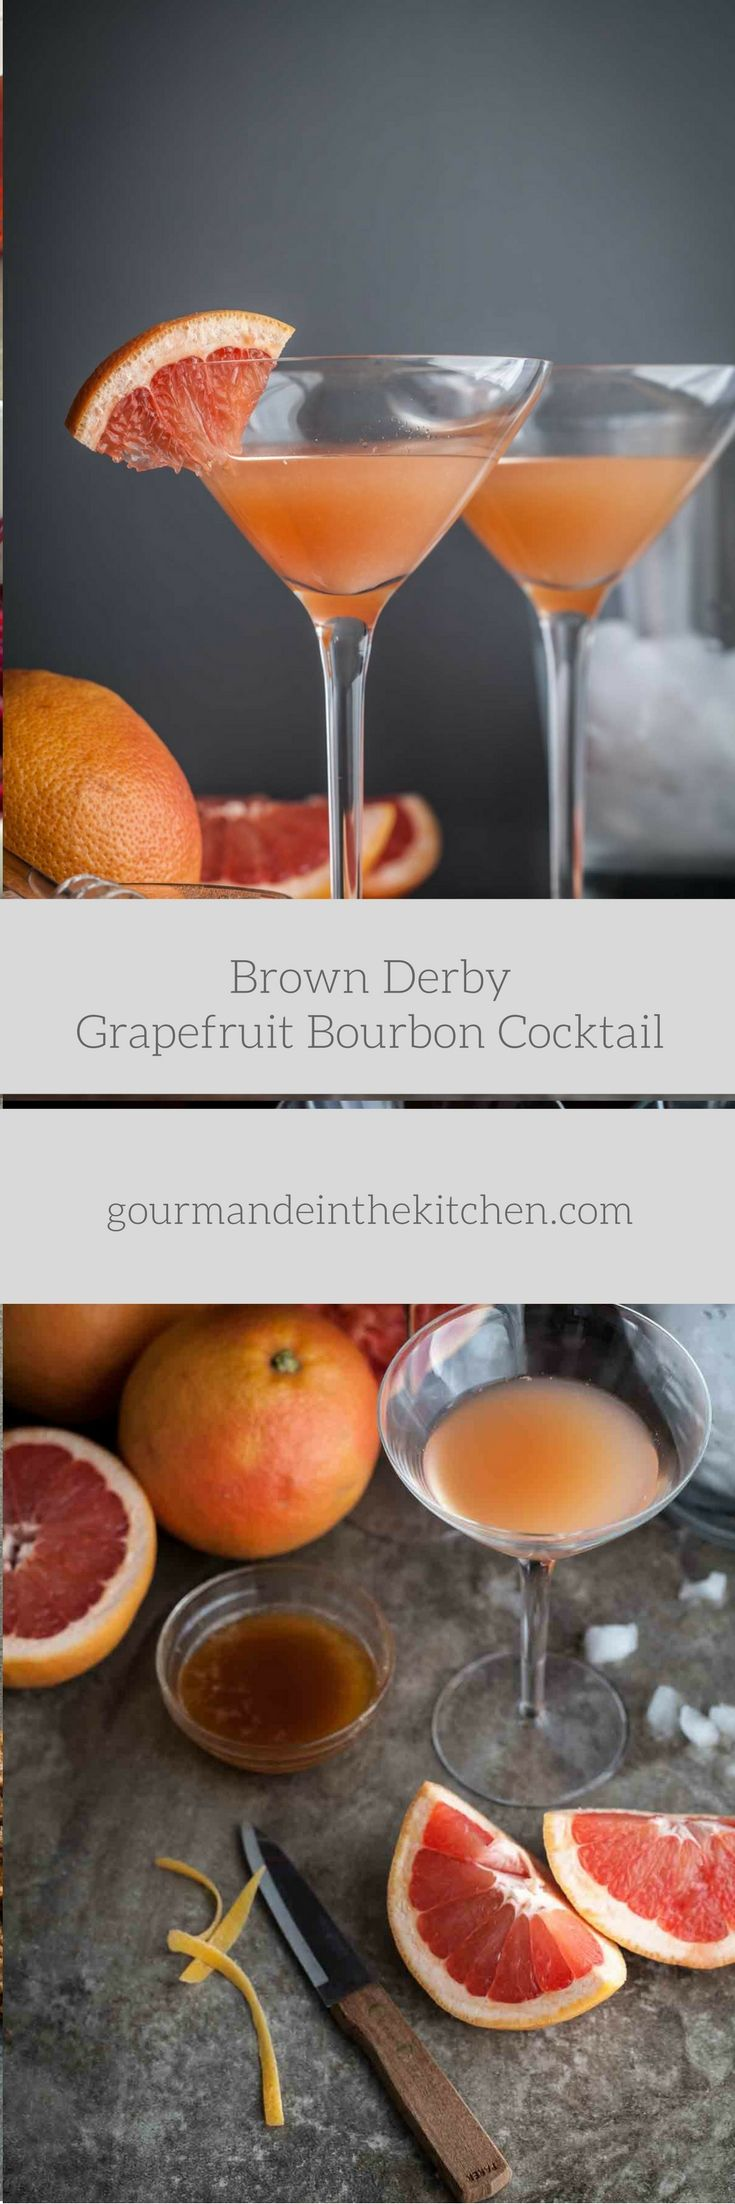 Brown Derby Grapefruit Cocktail | Gourmande in the Kitchen